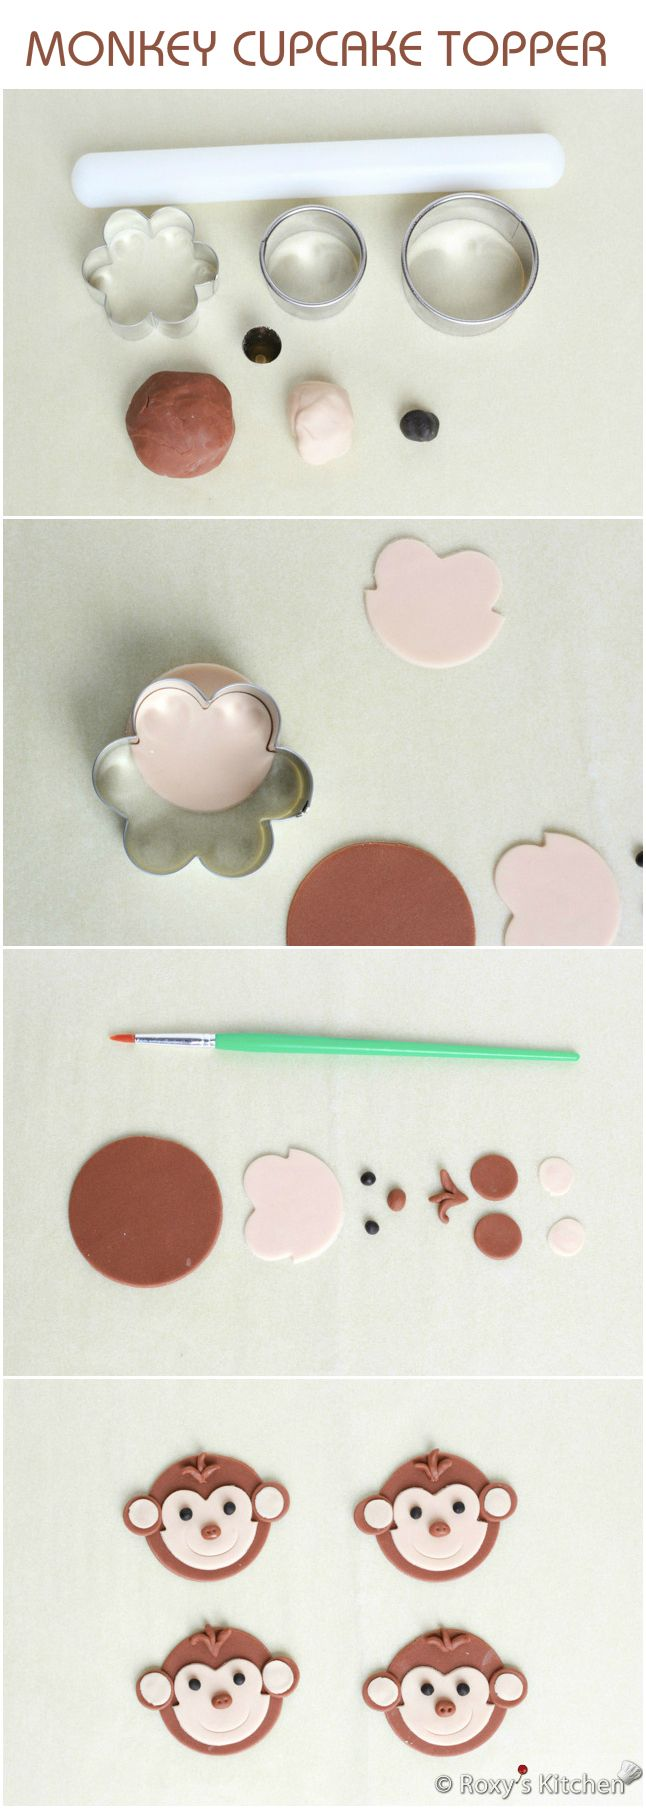 Step By Step Tutorial On How To Make a Sugarpaste Monkey Cupcake Topper.